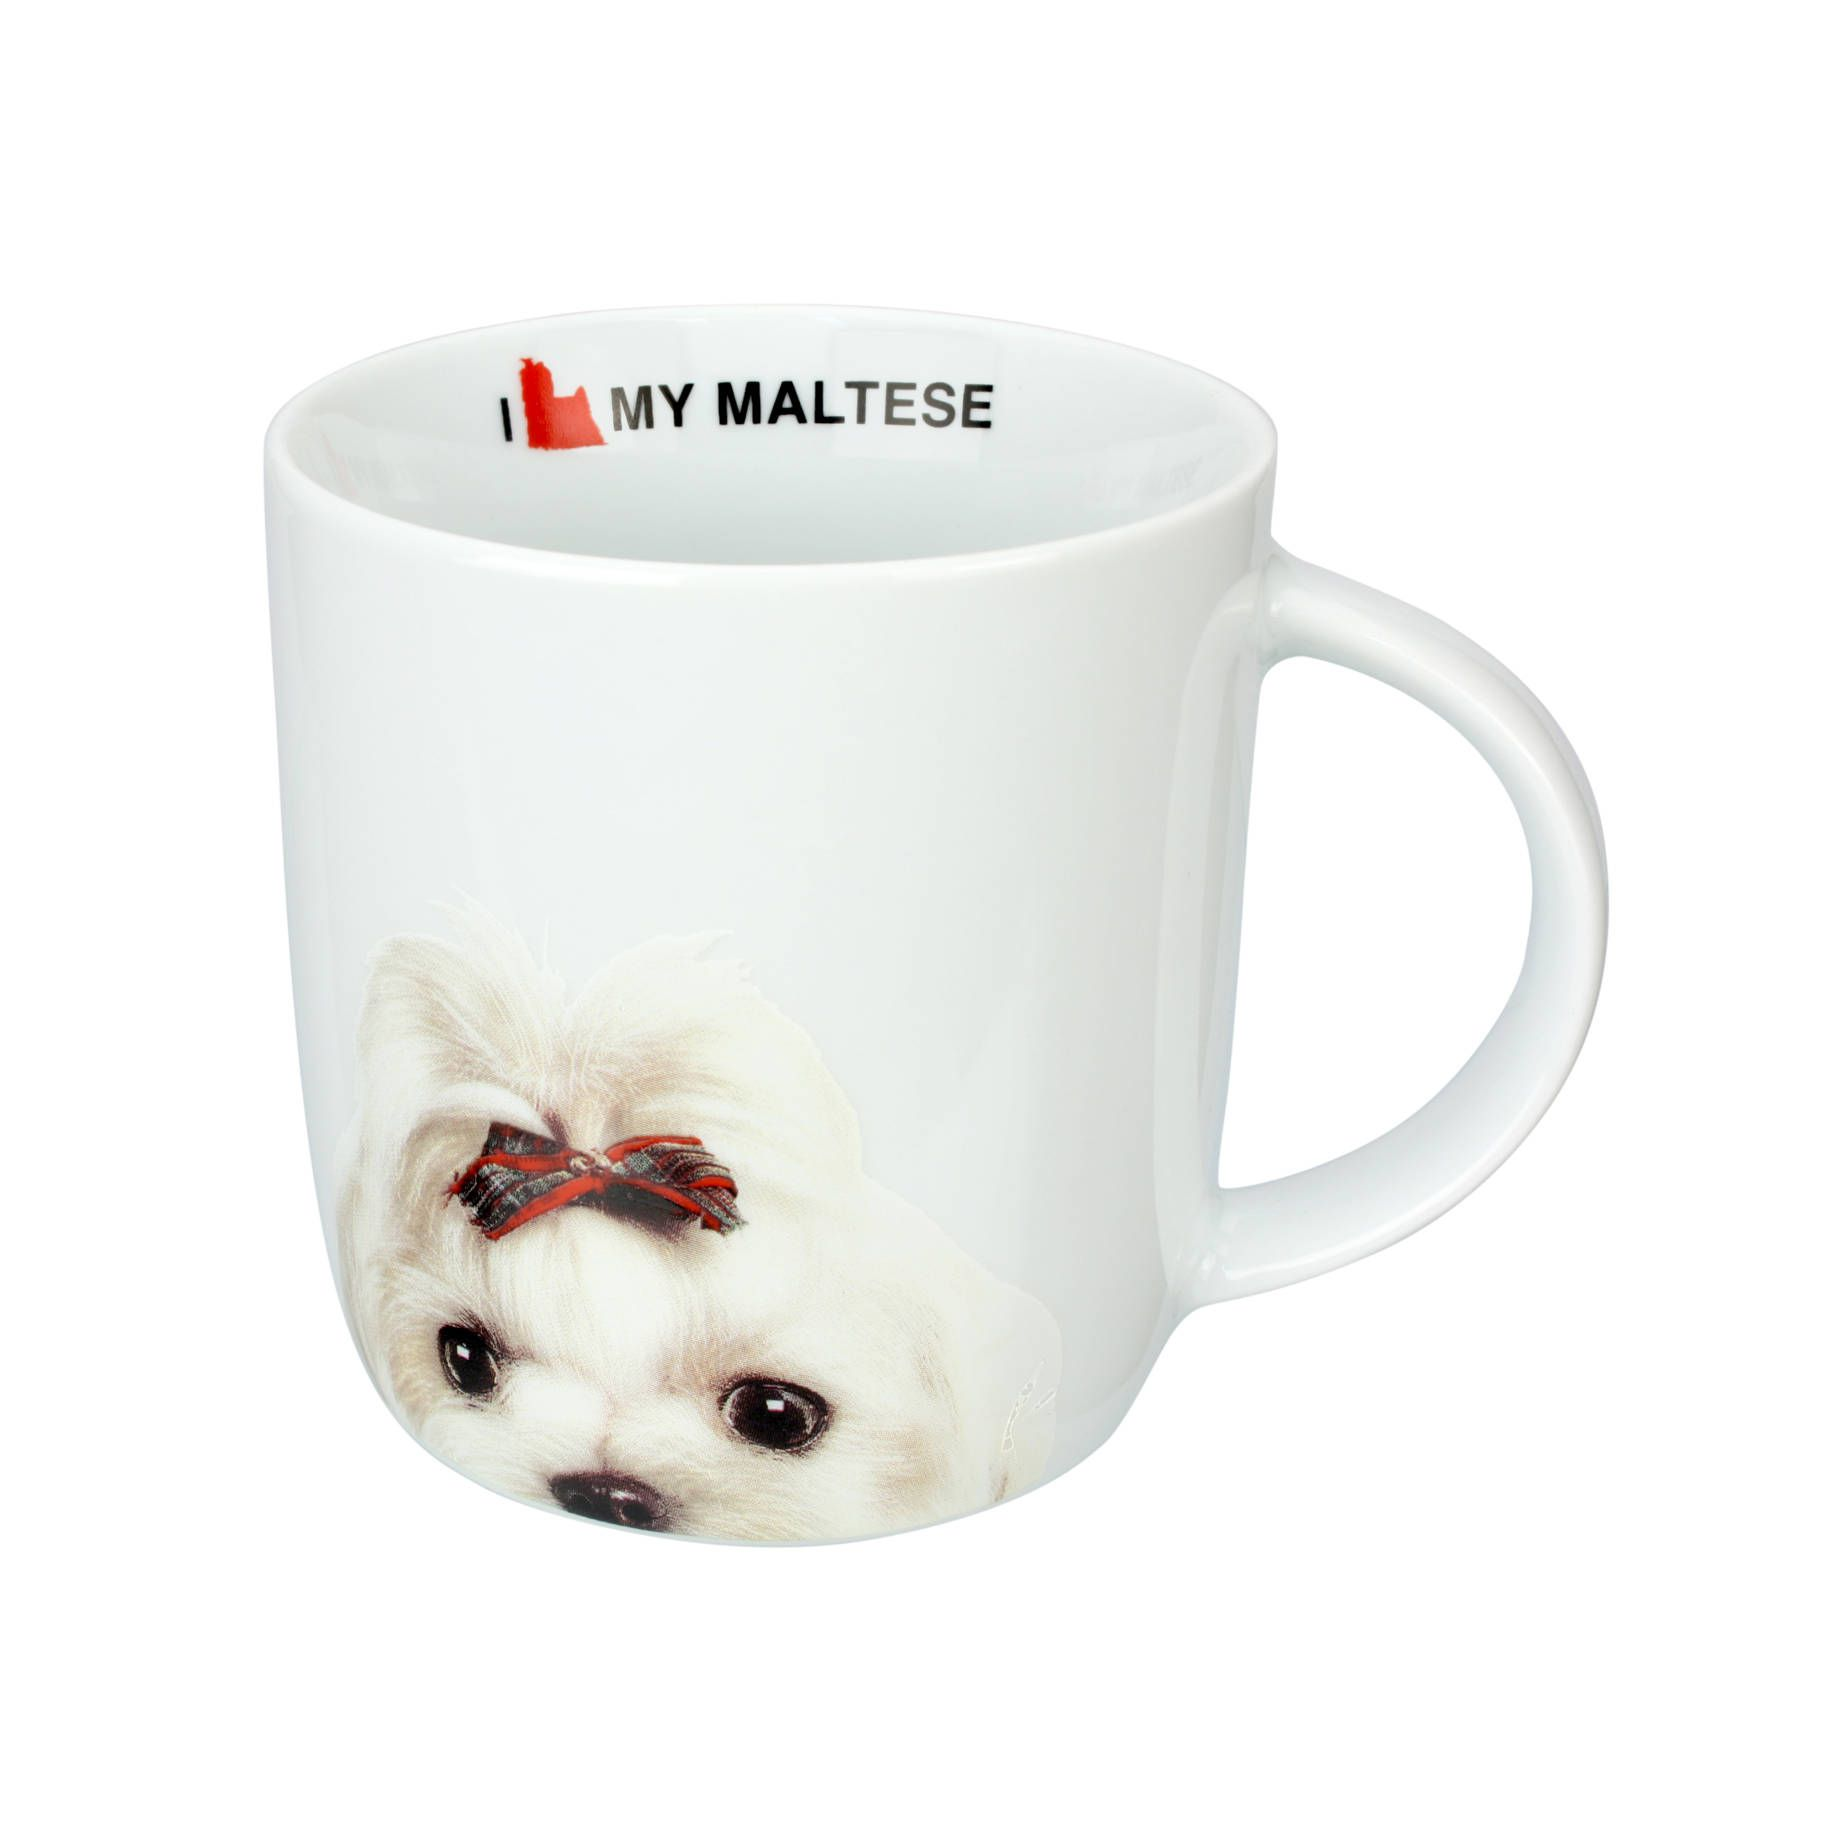 Caneca de Porcelana I Love My Maltese